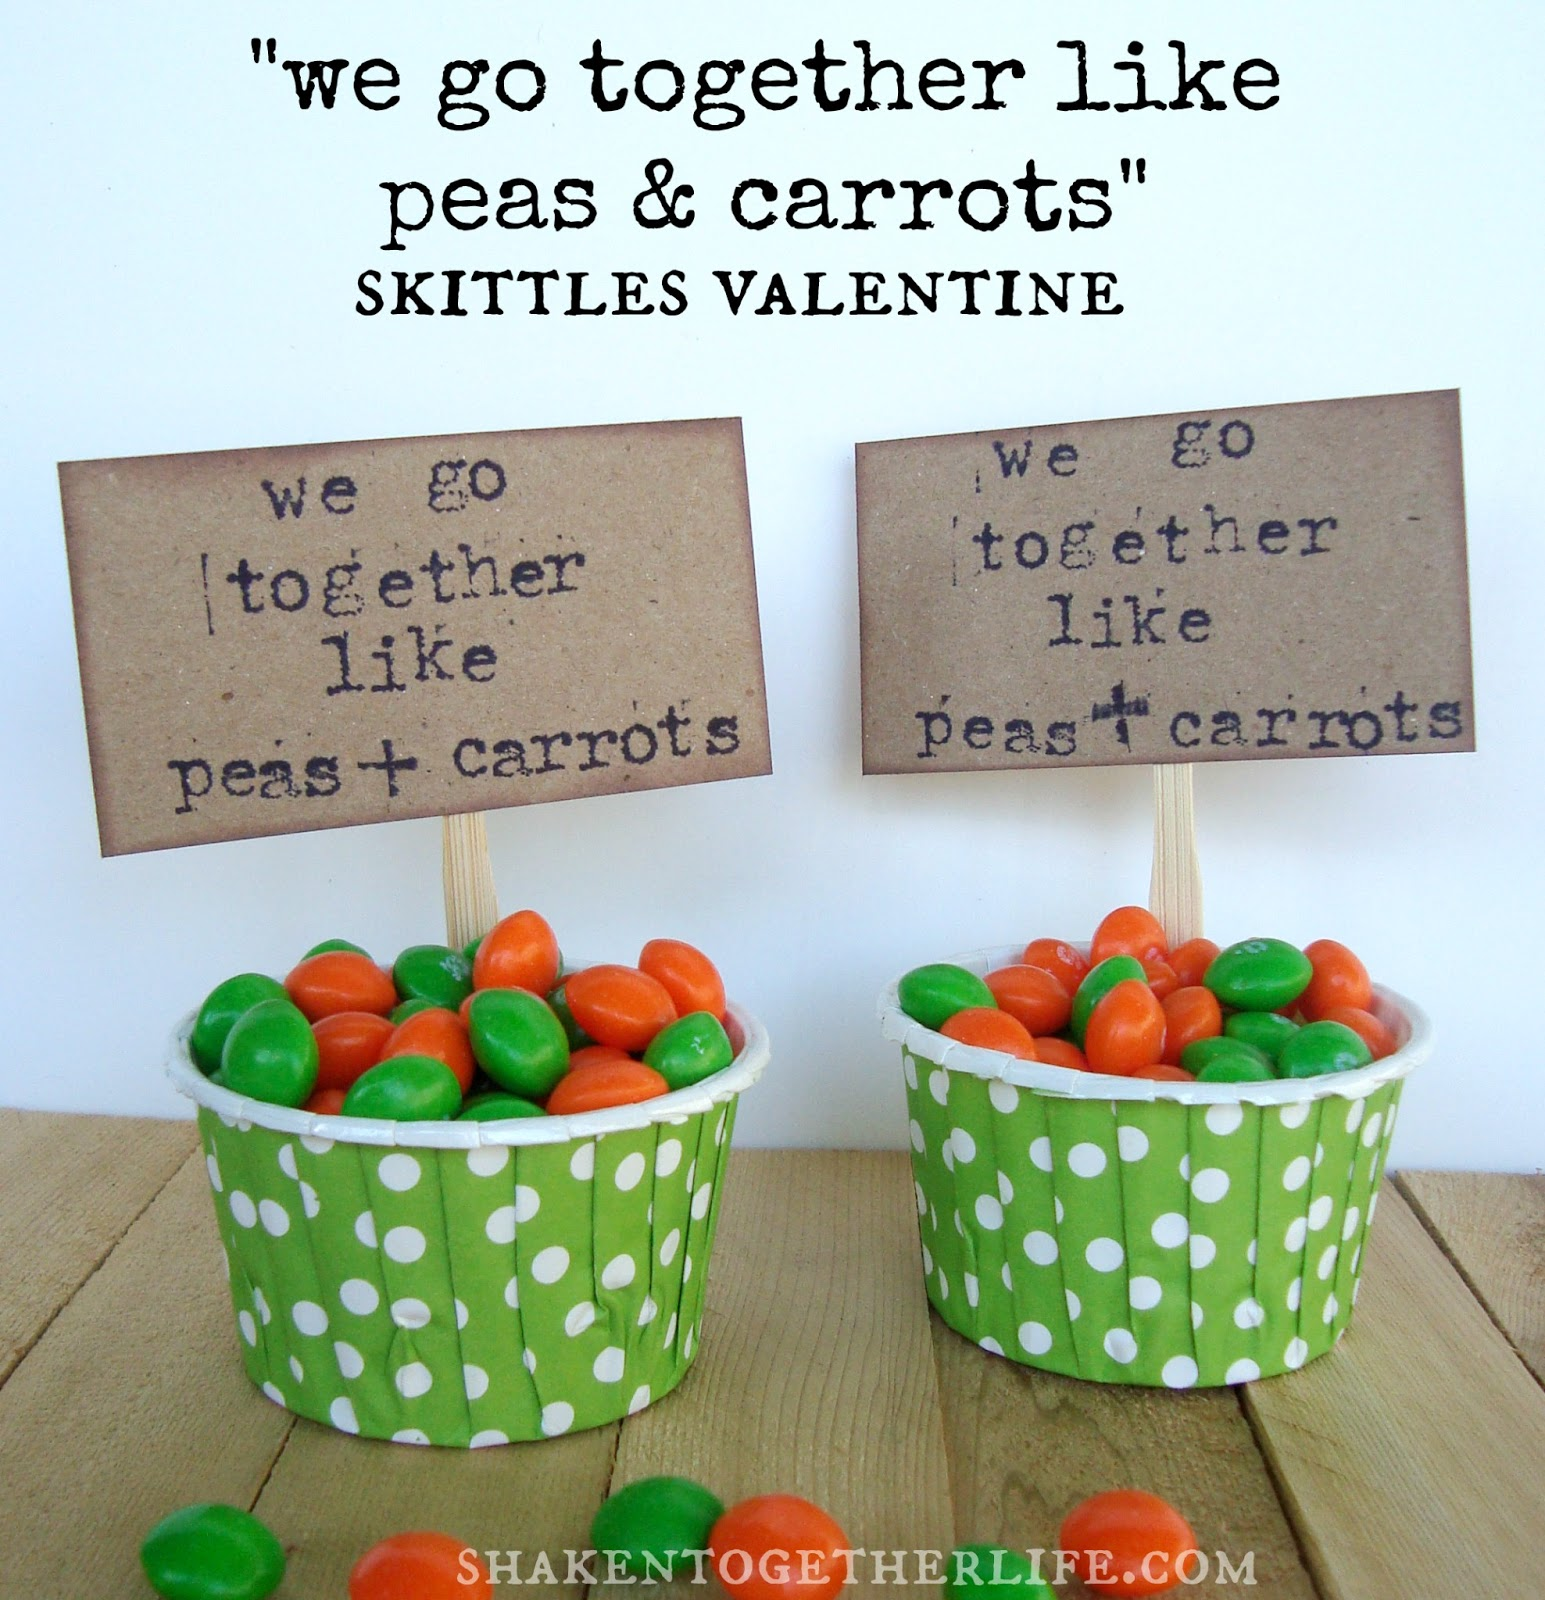 cute skittles quotes